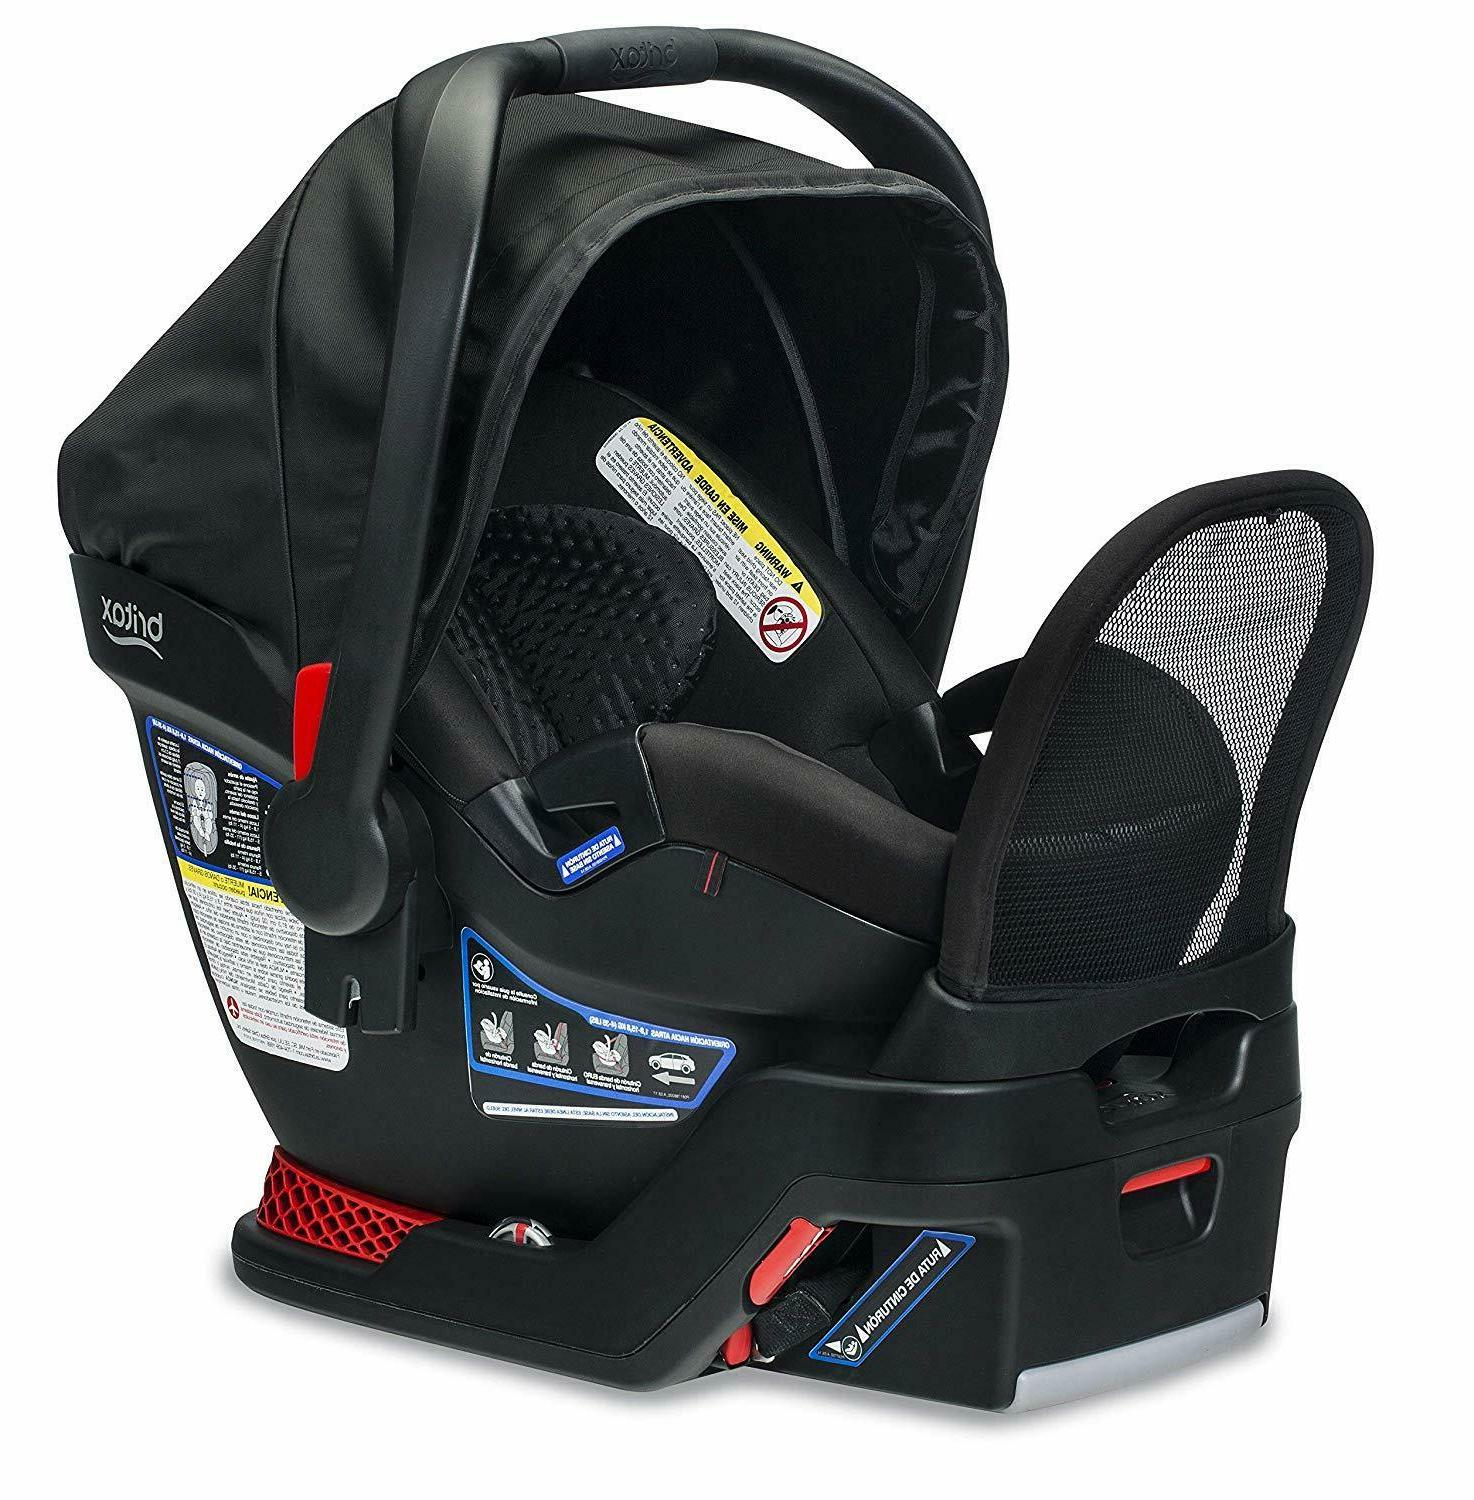 Britax Infant Seat in With ARB